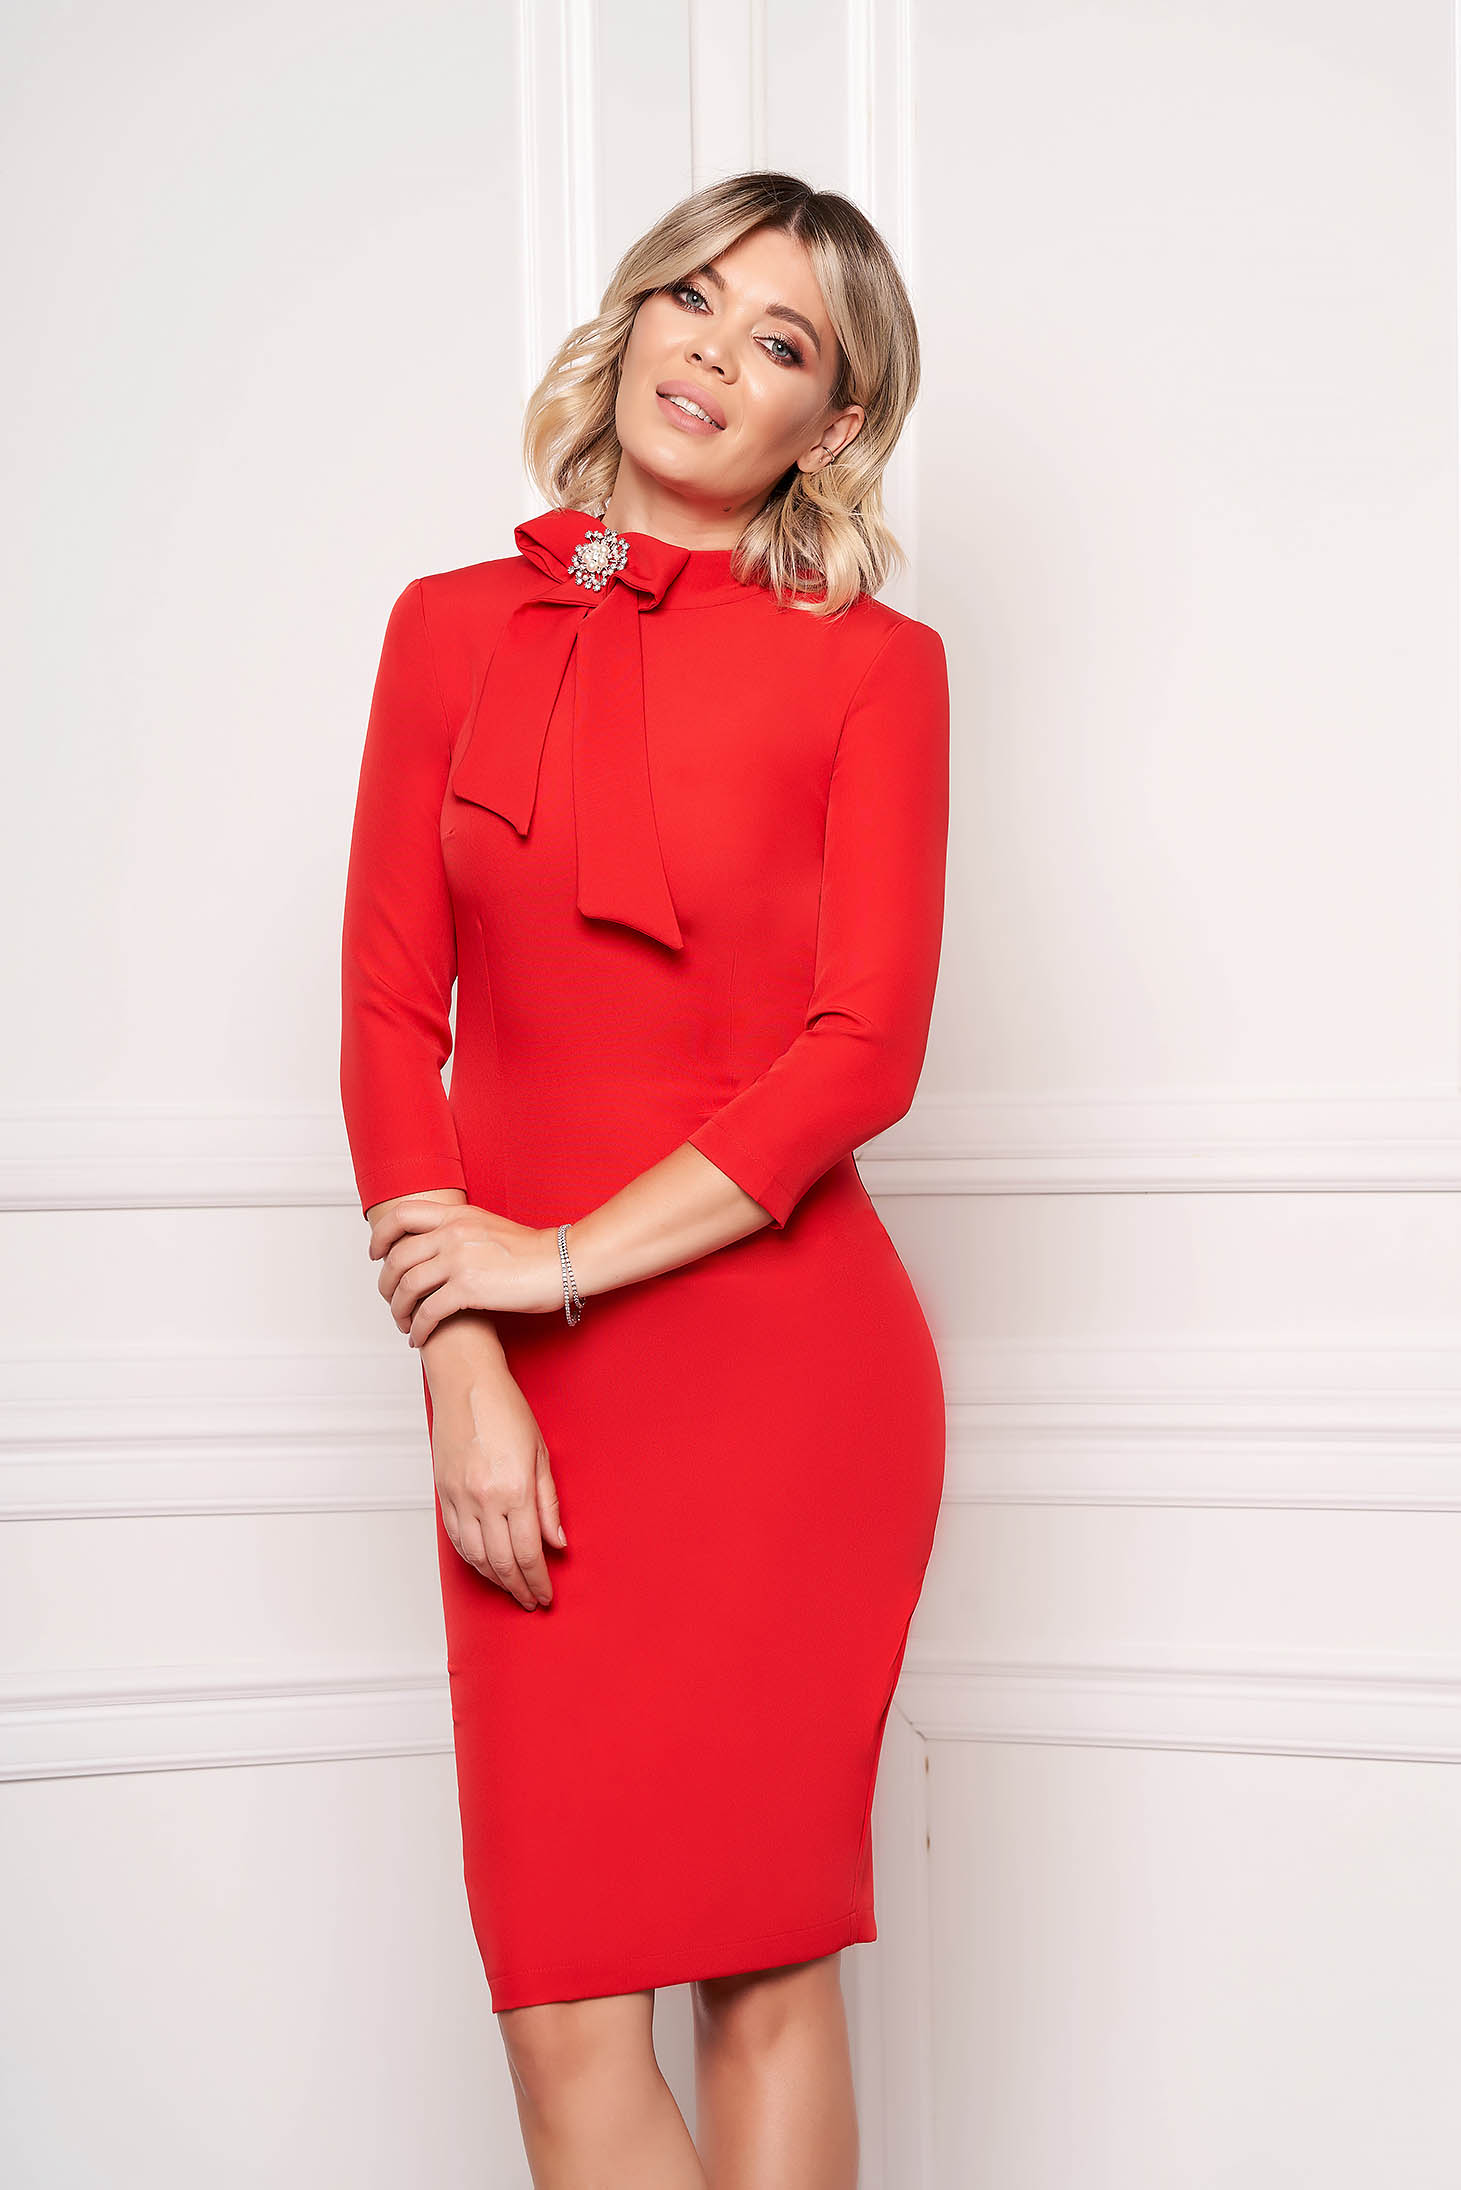 StarShinerS red dress elegant office midi cloth slightly elastic fabric accessorized with breastpin